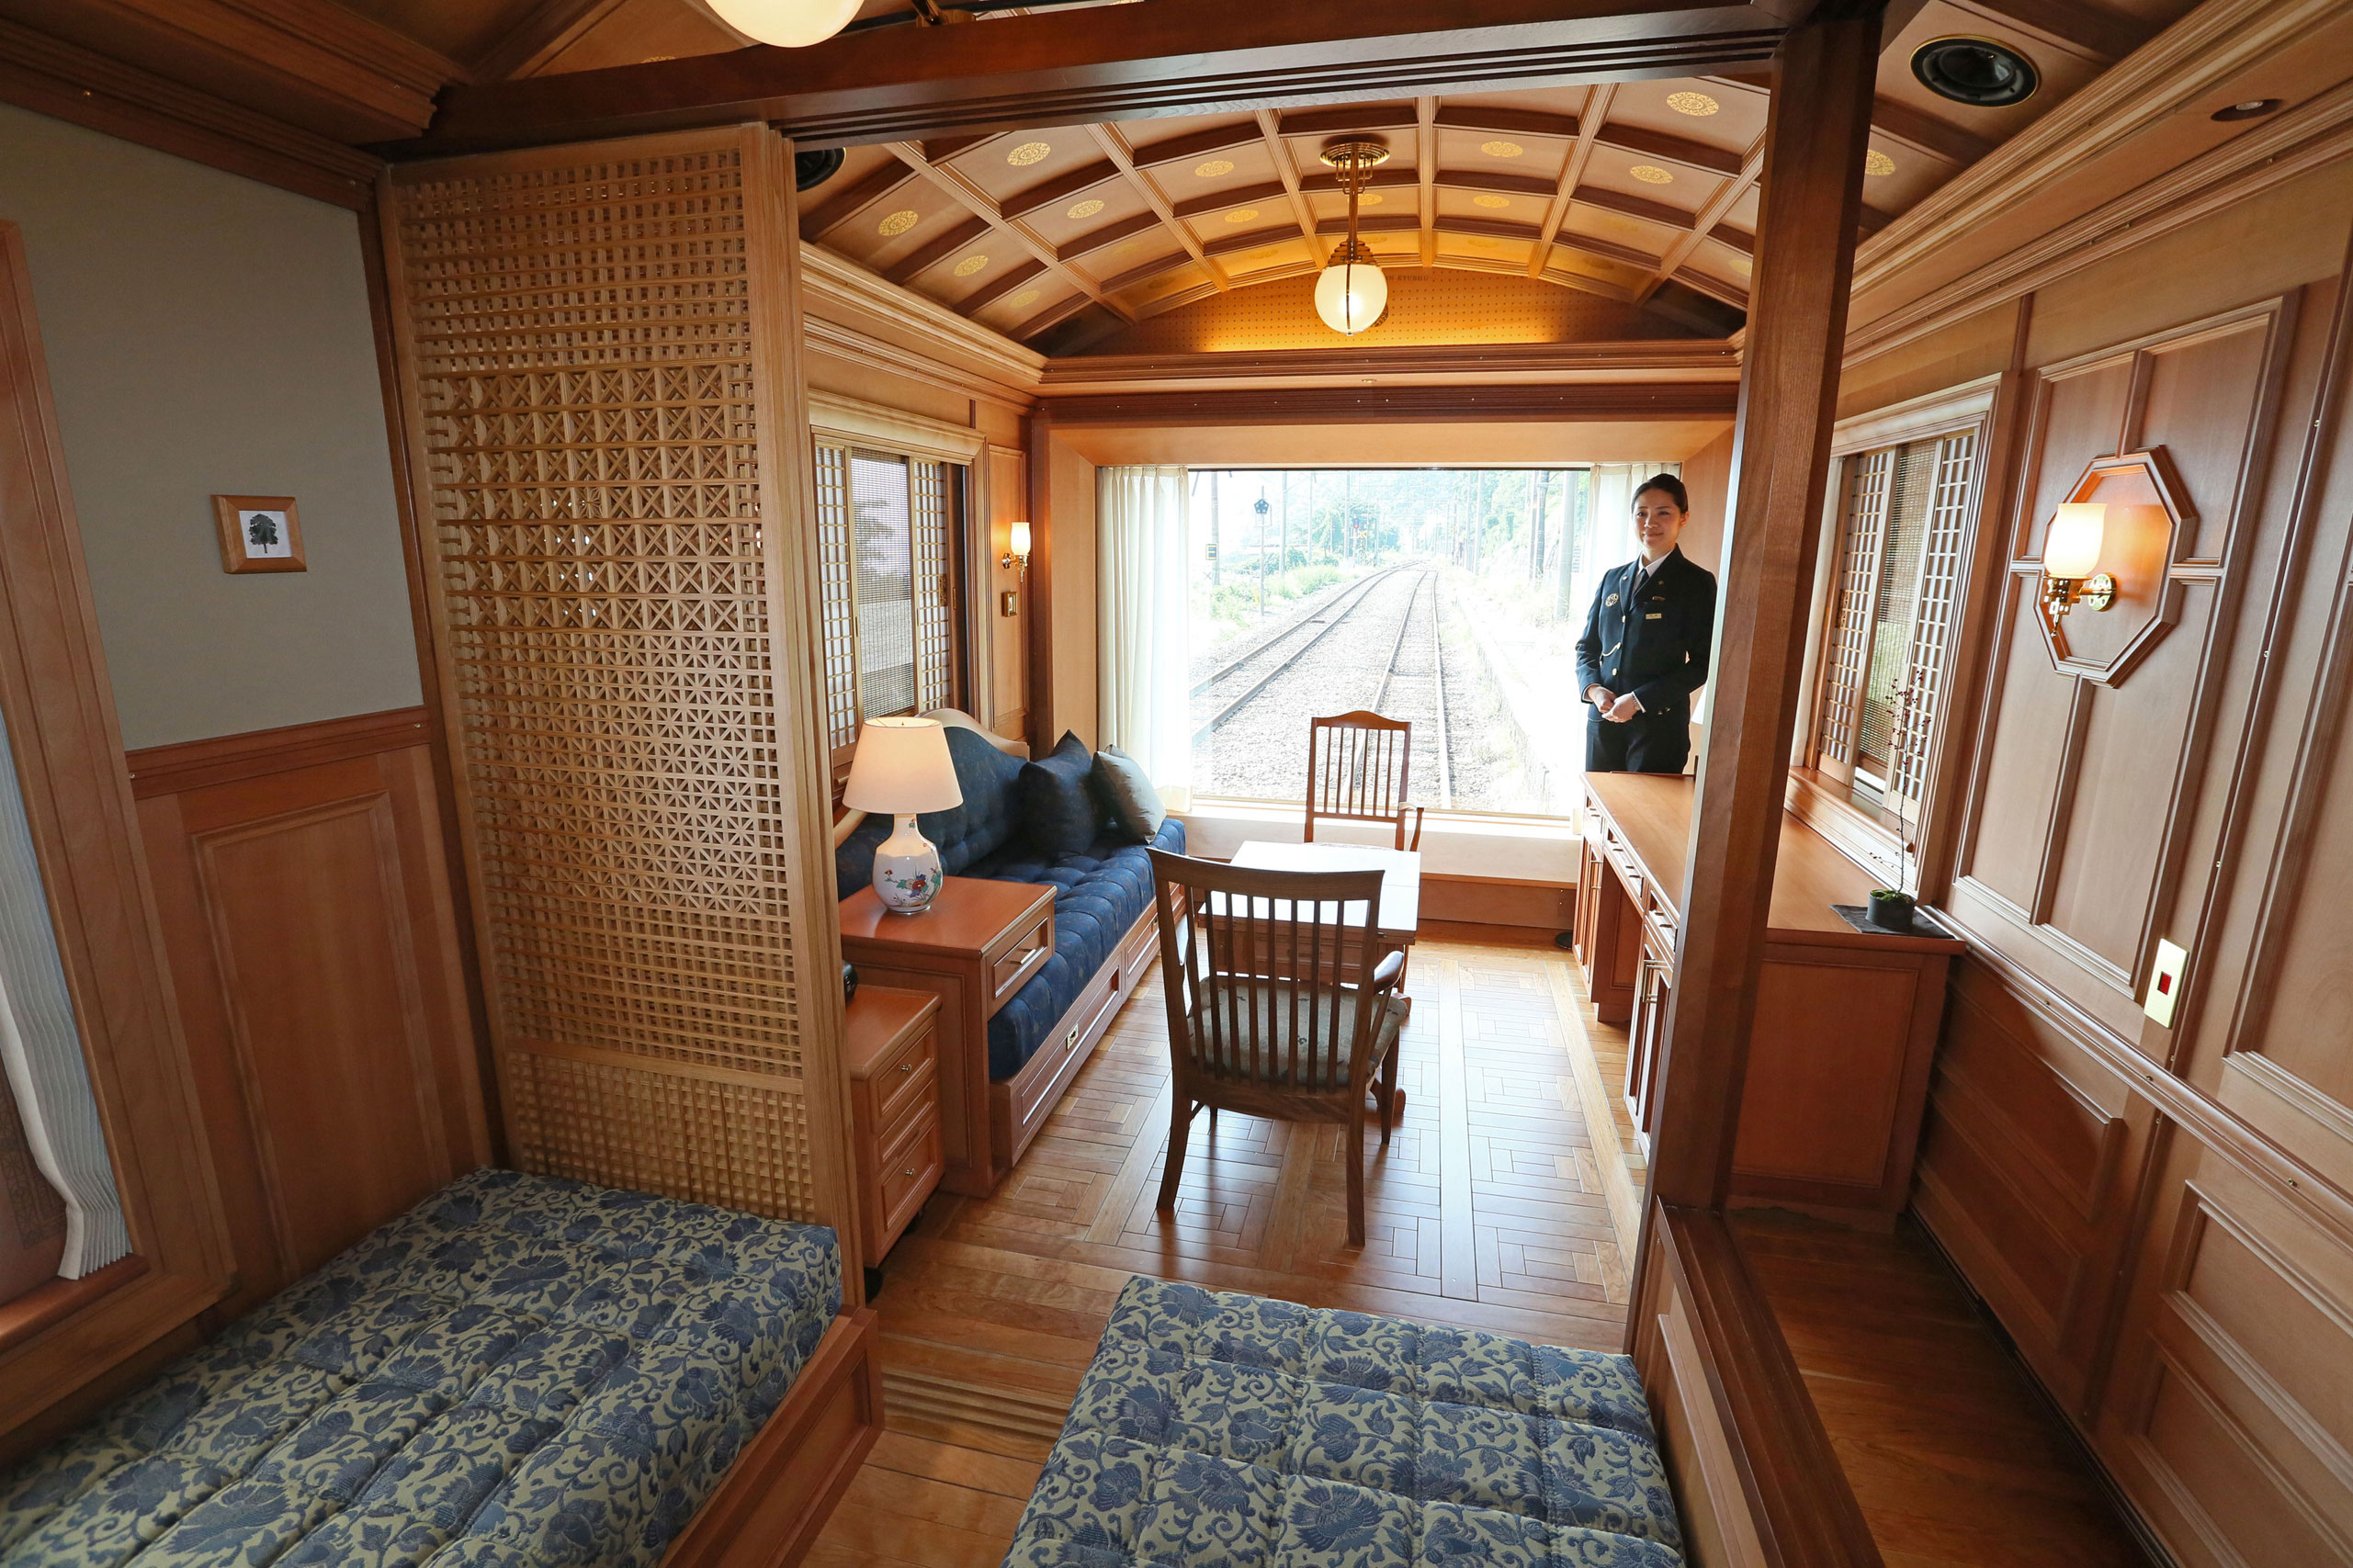 JR Kyushu showcases a luxury passenger room aboard the Seven Star cruise train on Oct. 10, 2013. The high grade lounge car costs 560,000 Japanese yen (approximately US $5,300) for a 4-day trip around Kyushu.